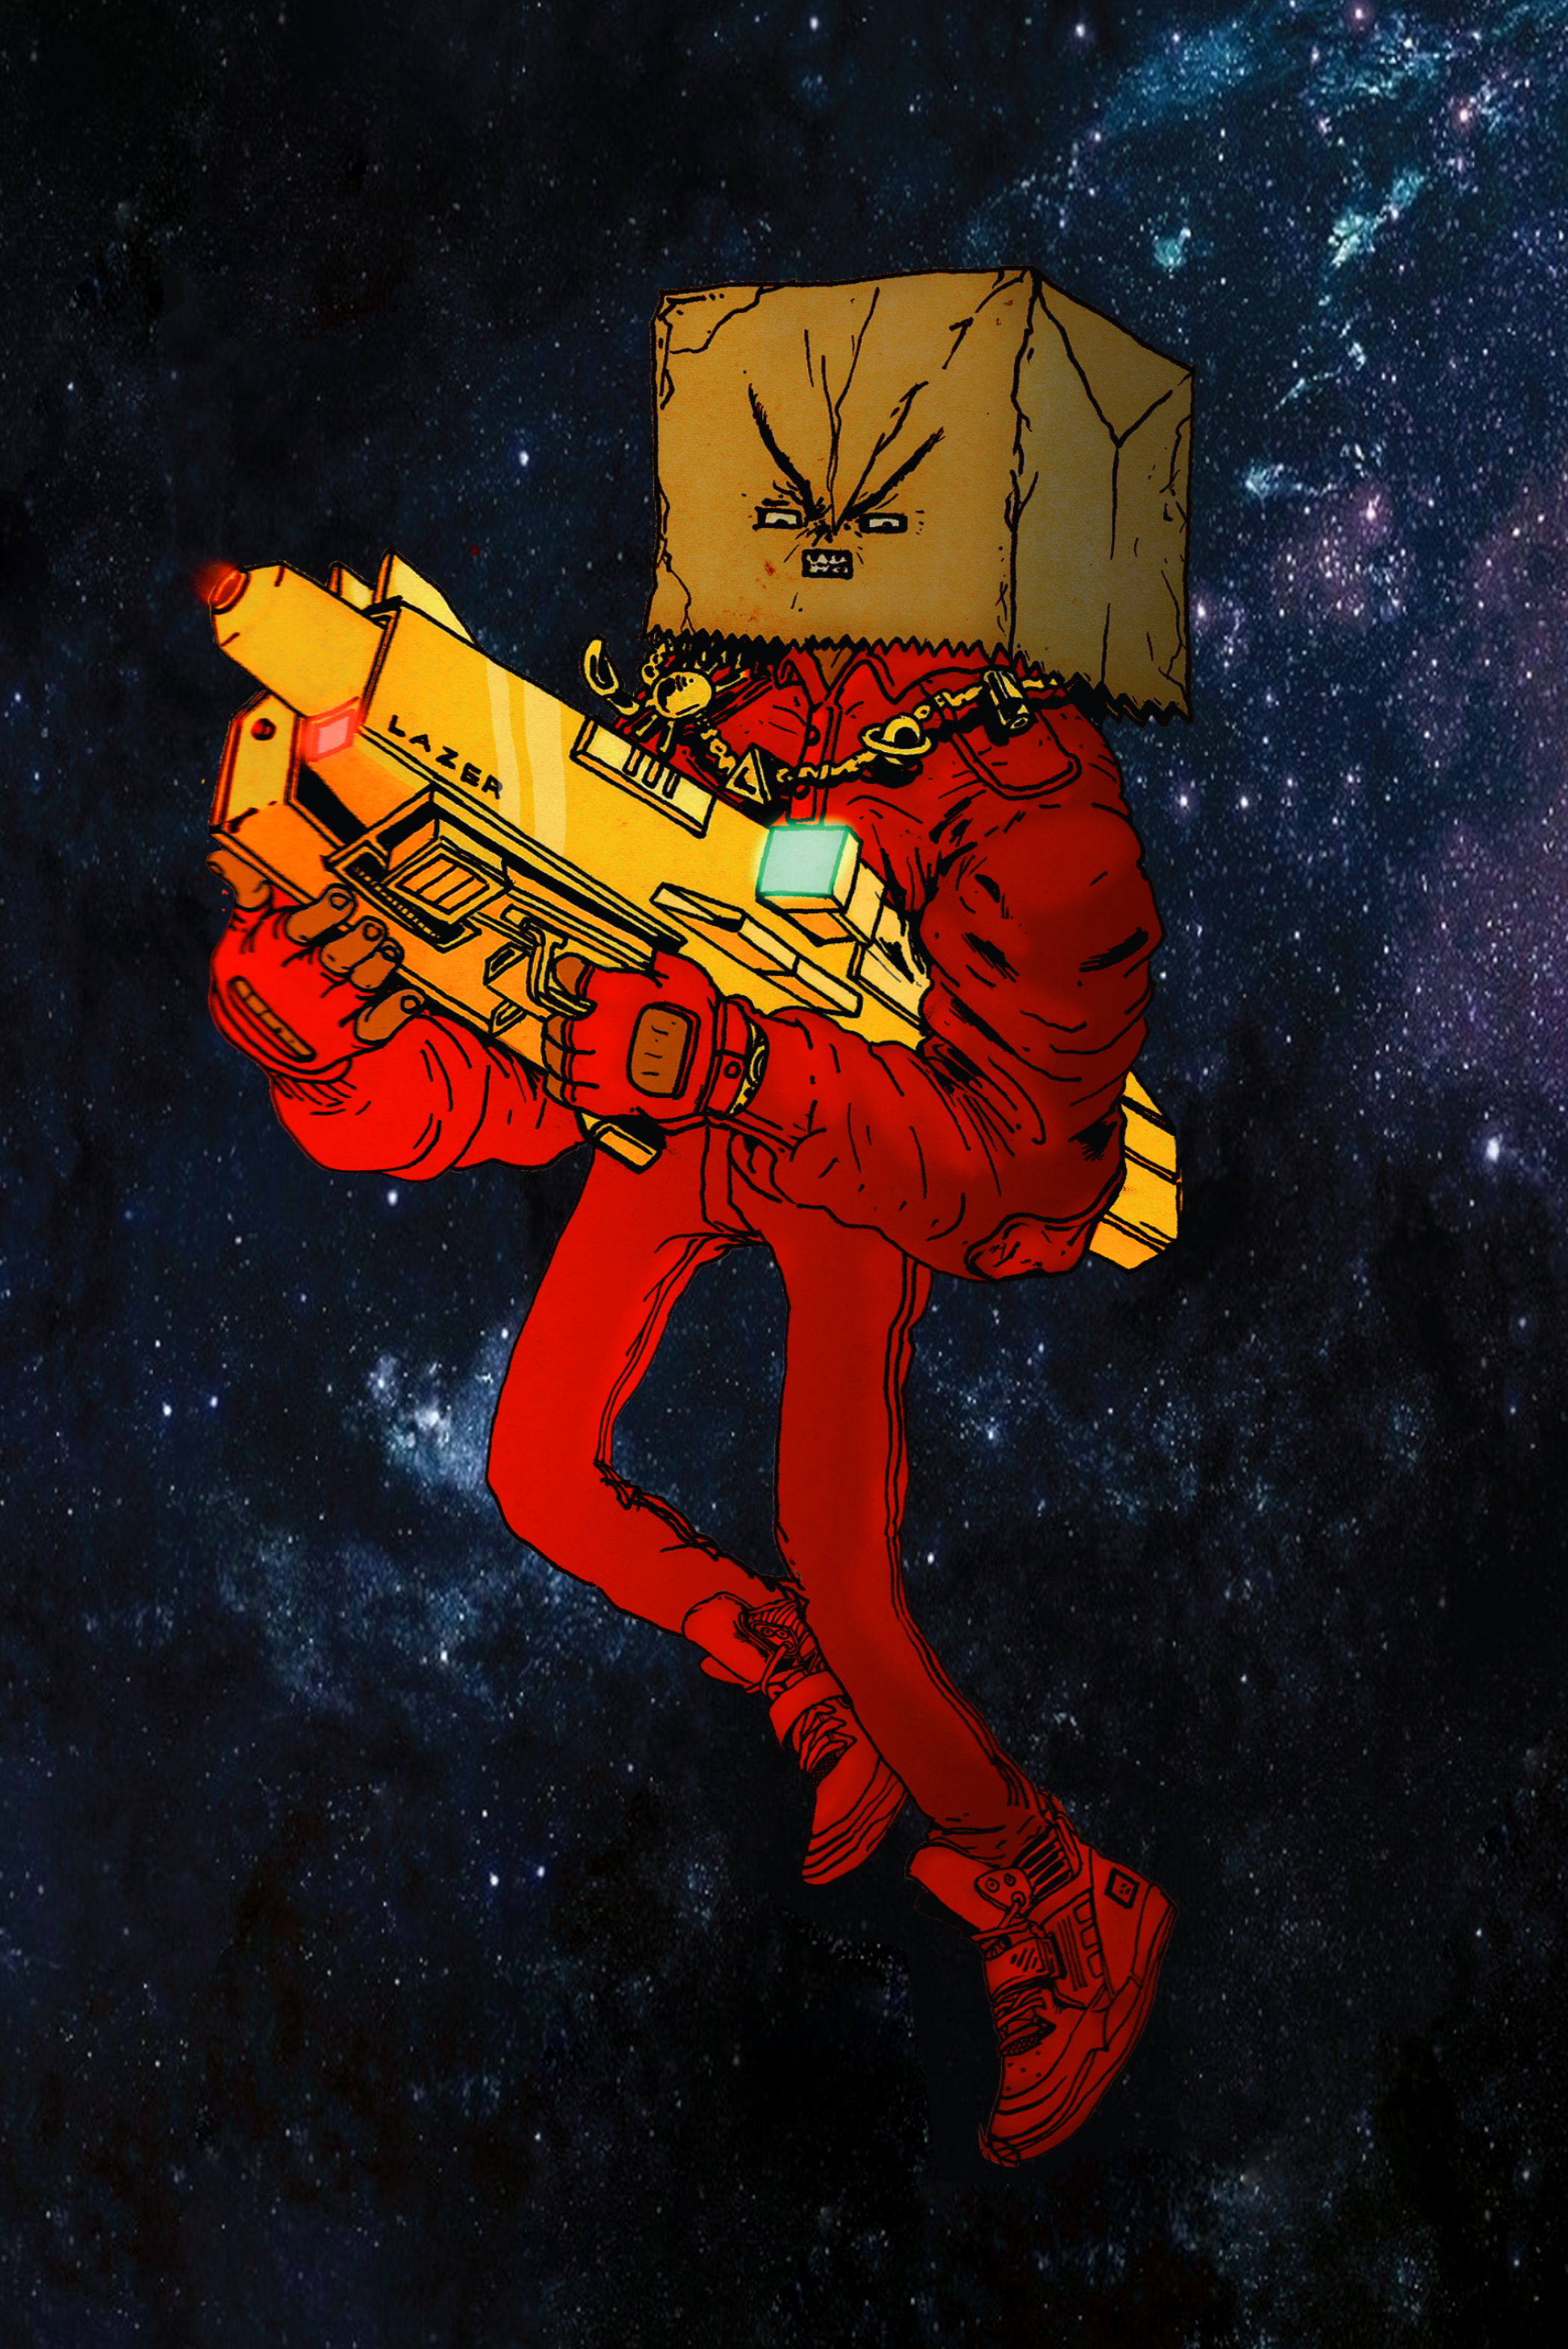 SPACE_PAPE